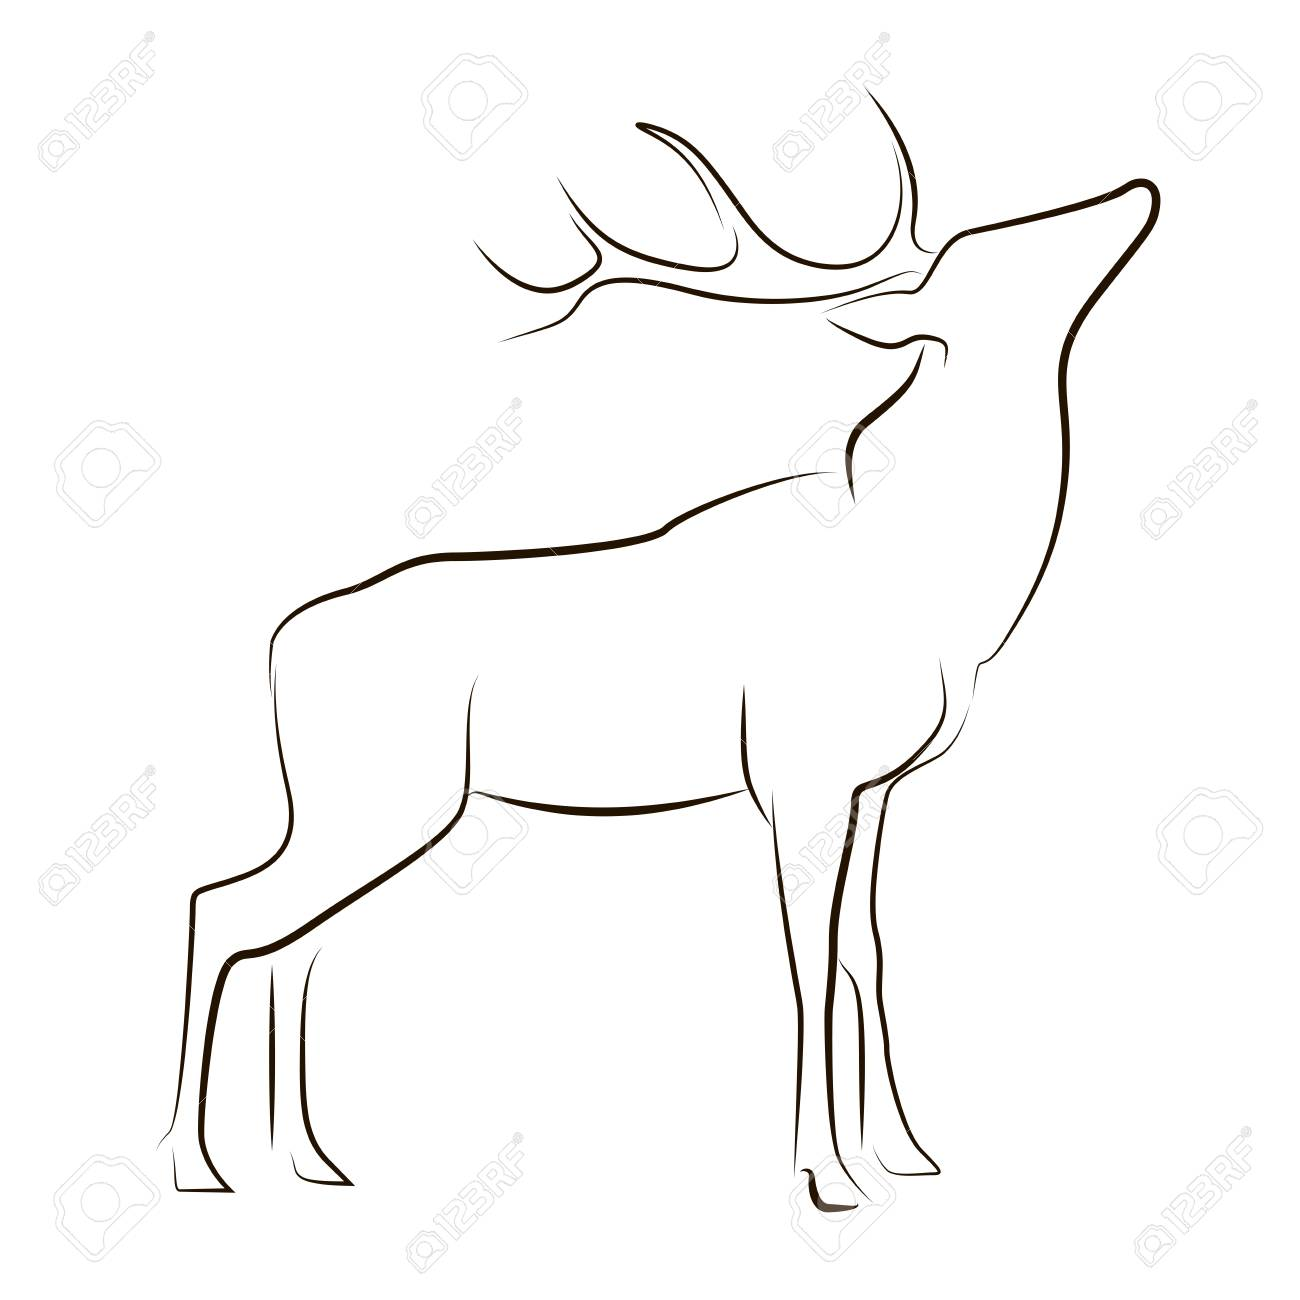 Standing Black Line Deer On White Background Hand Drawing Vector Royalty Free Cliparts Vectors And Stock Illustration Image 108857983